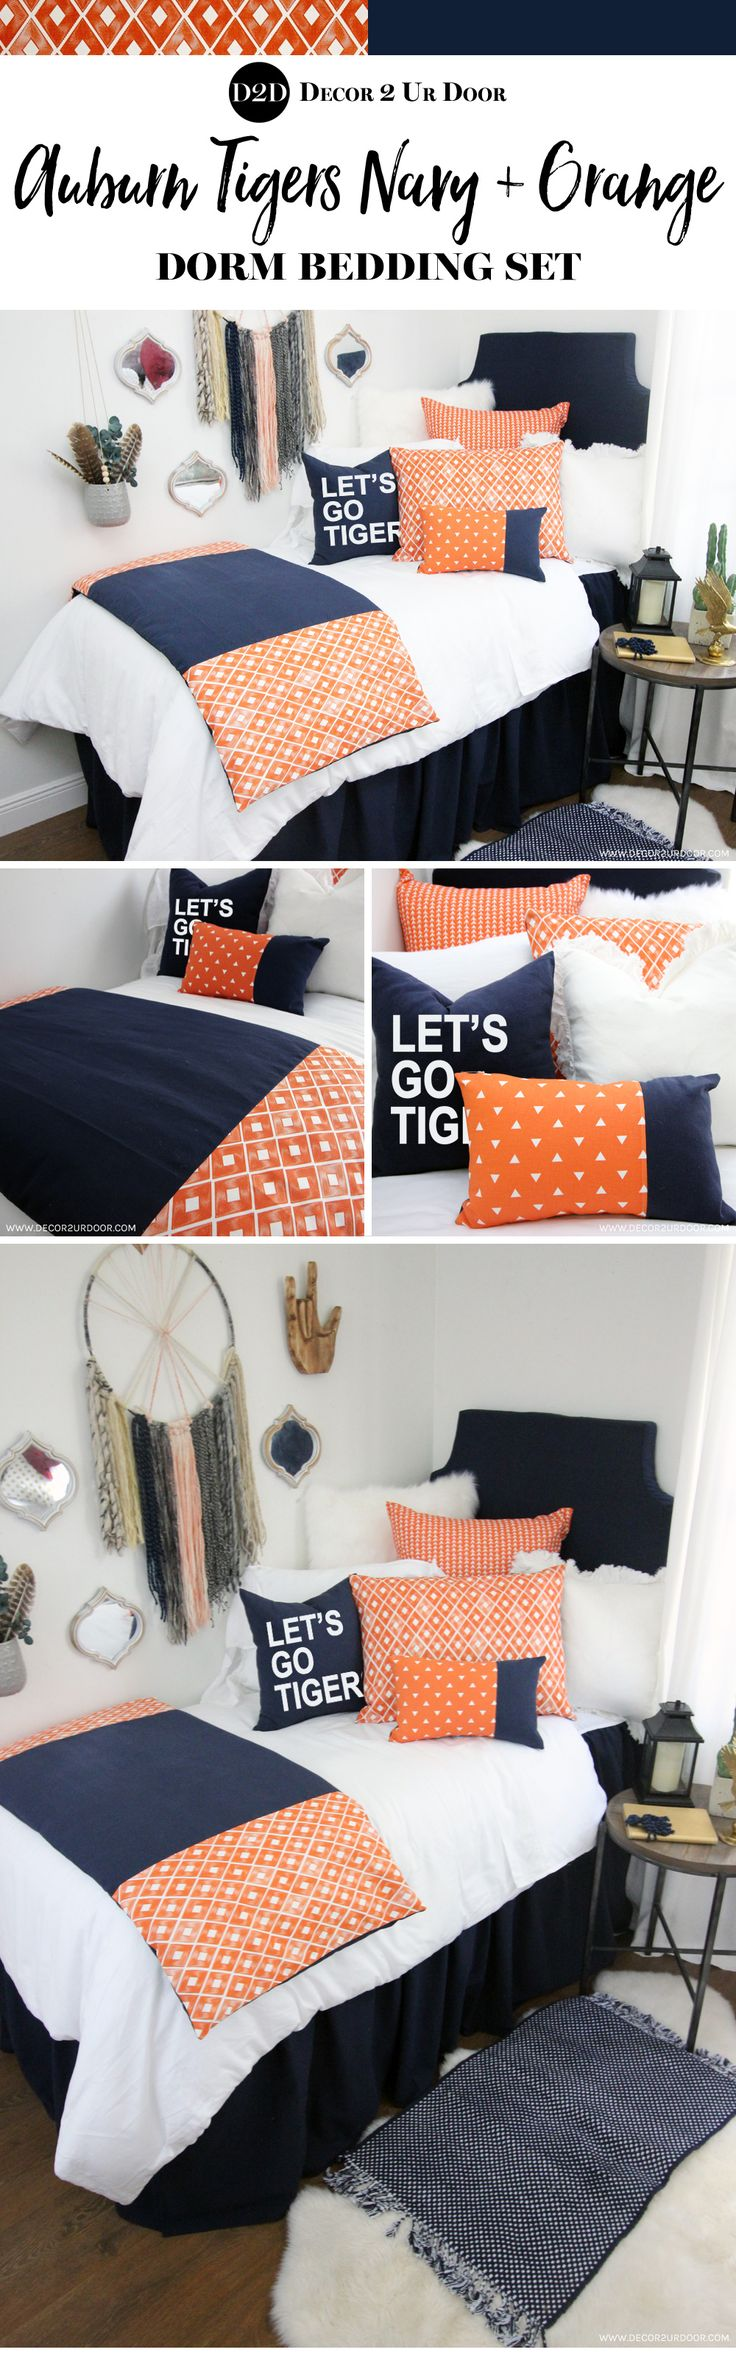 best ucthereus no place like homeud images on pinterest bedrooms